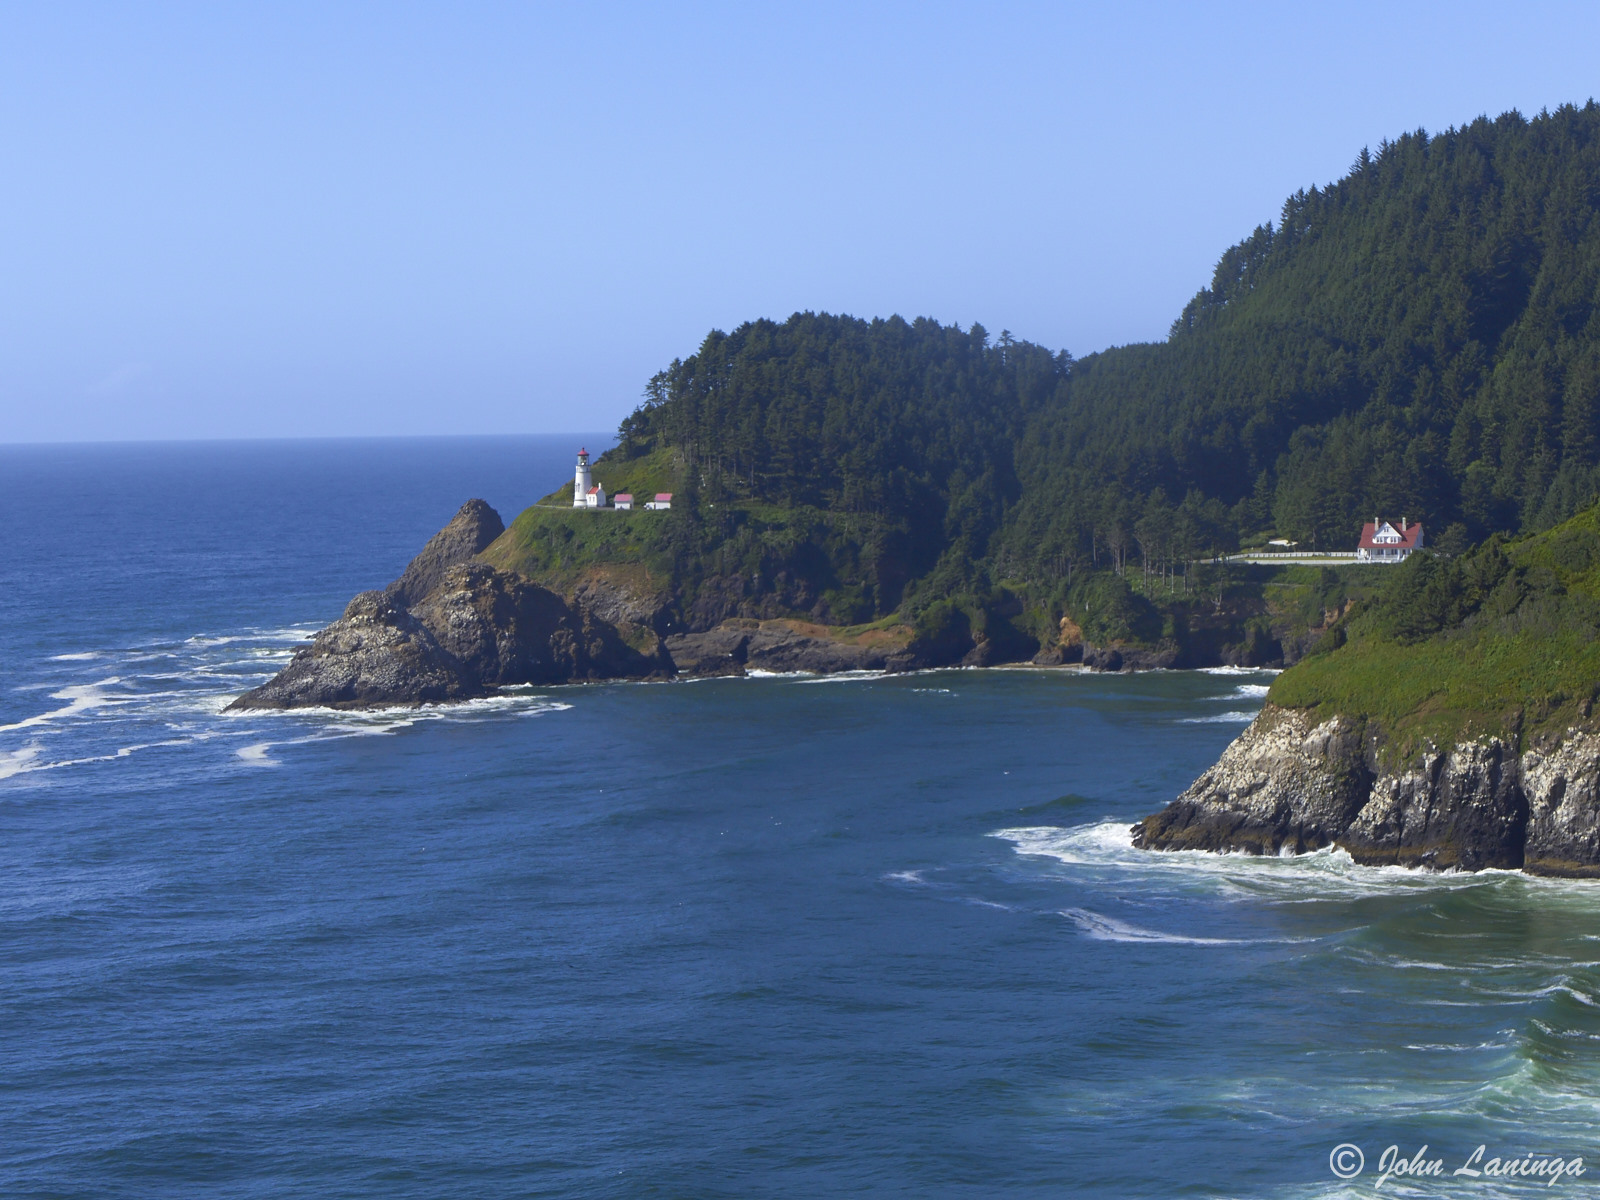 Distan view of Heceta Head lighthouse